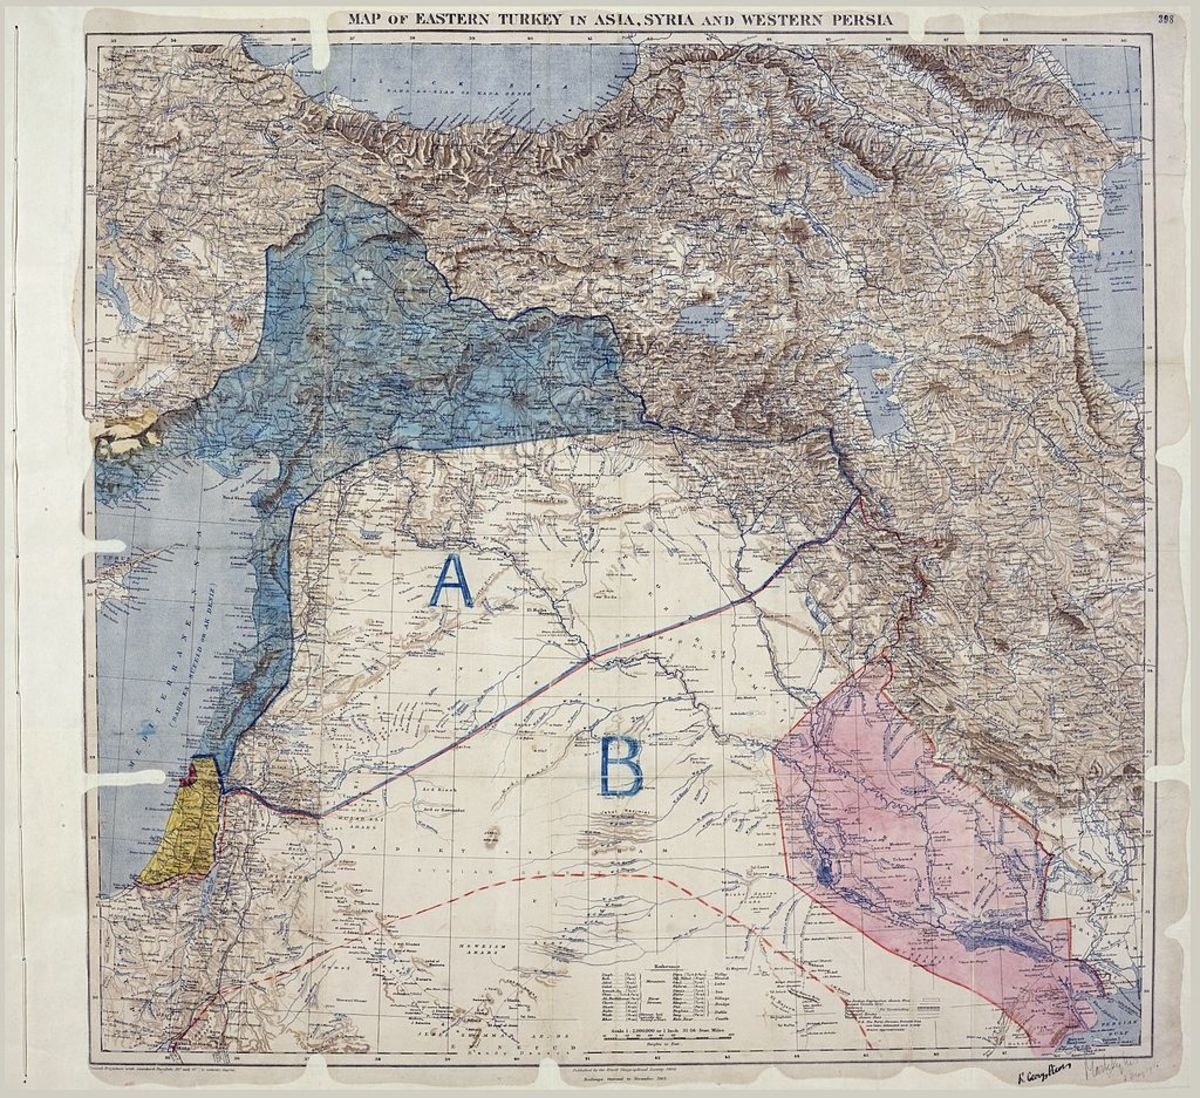 The Sykes-Picot Map Dividing French and British Spheres of Influence